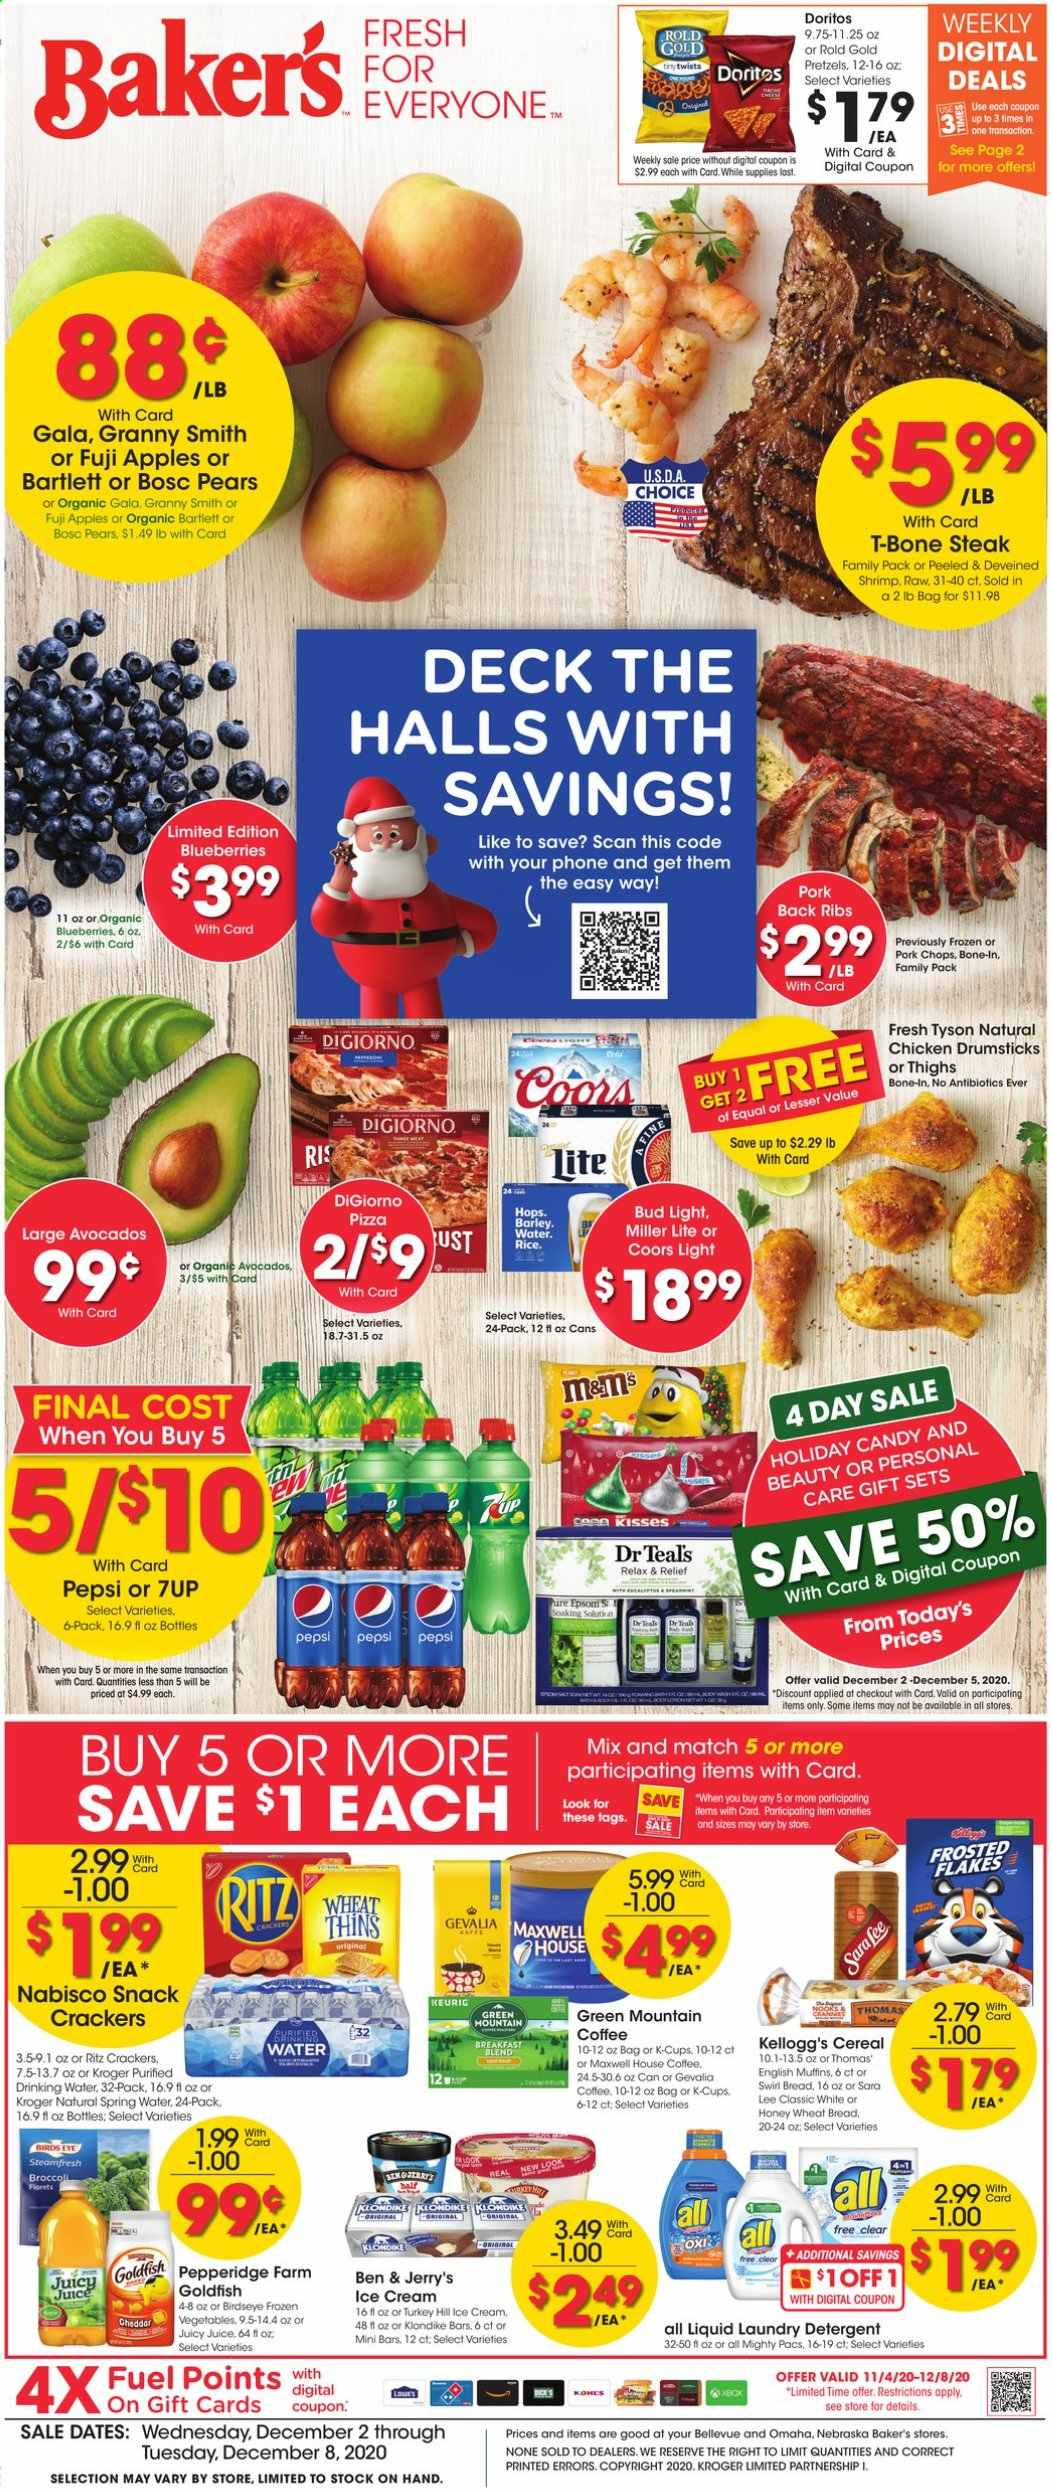 Baker's Flyer - 12.02.2020 - 12.08.2020 - Sales products - apples, avocado, barley, blueberries, bread, broccoli, cereals, detergent, Doritos, english muffins, frozen vegetables, fuel, Maxwell House, Miller Lite, muffins, rice, spring water, t-bone steak, turkey, wheat bread, Halls, honey, ice cream, pizza, pork chops, pork meat, pretzels, cheddar, chicken, pears, Pepsi, fuji apple, steak, juice, candy, Vegetables, snack, Lee, Bud Light, flakes, ribs, Coors, laundry detergent, Apple, shrimps, phone, vegetable, spring. Page 1.